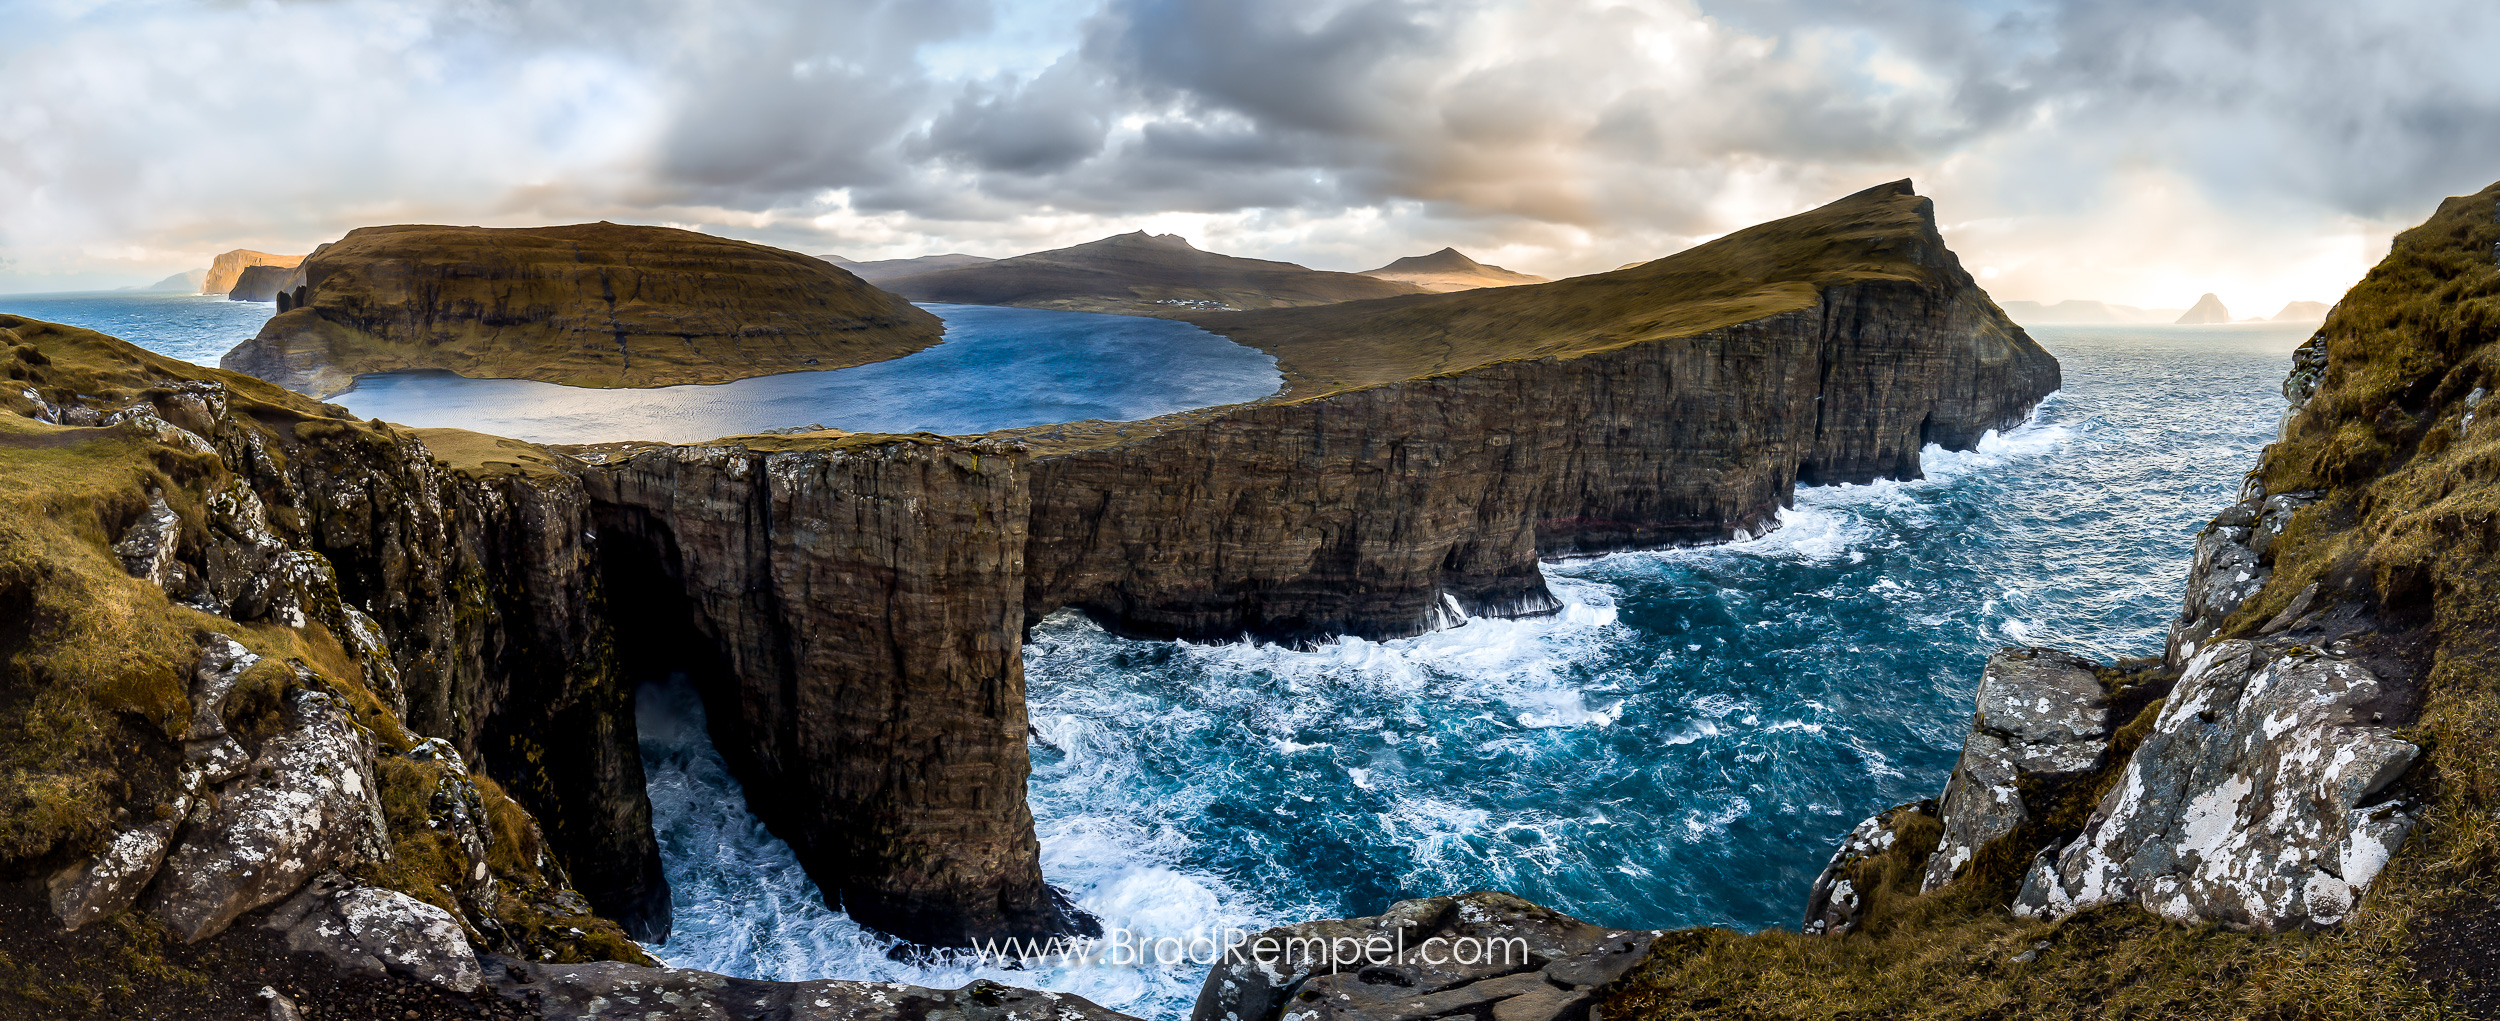 Traelanipan Trail and Sorvagsvatn Lake, Faroe Islands - Brad Rempel